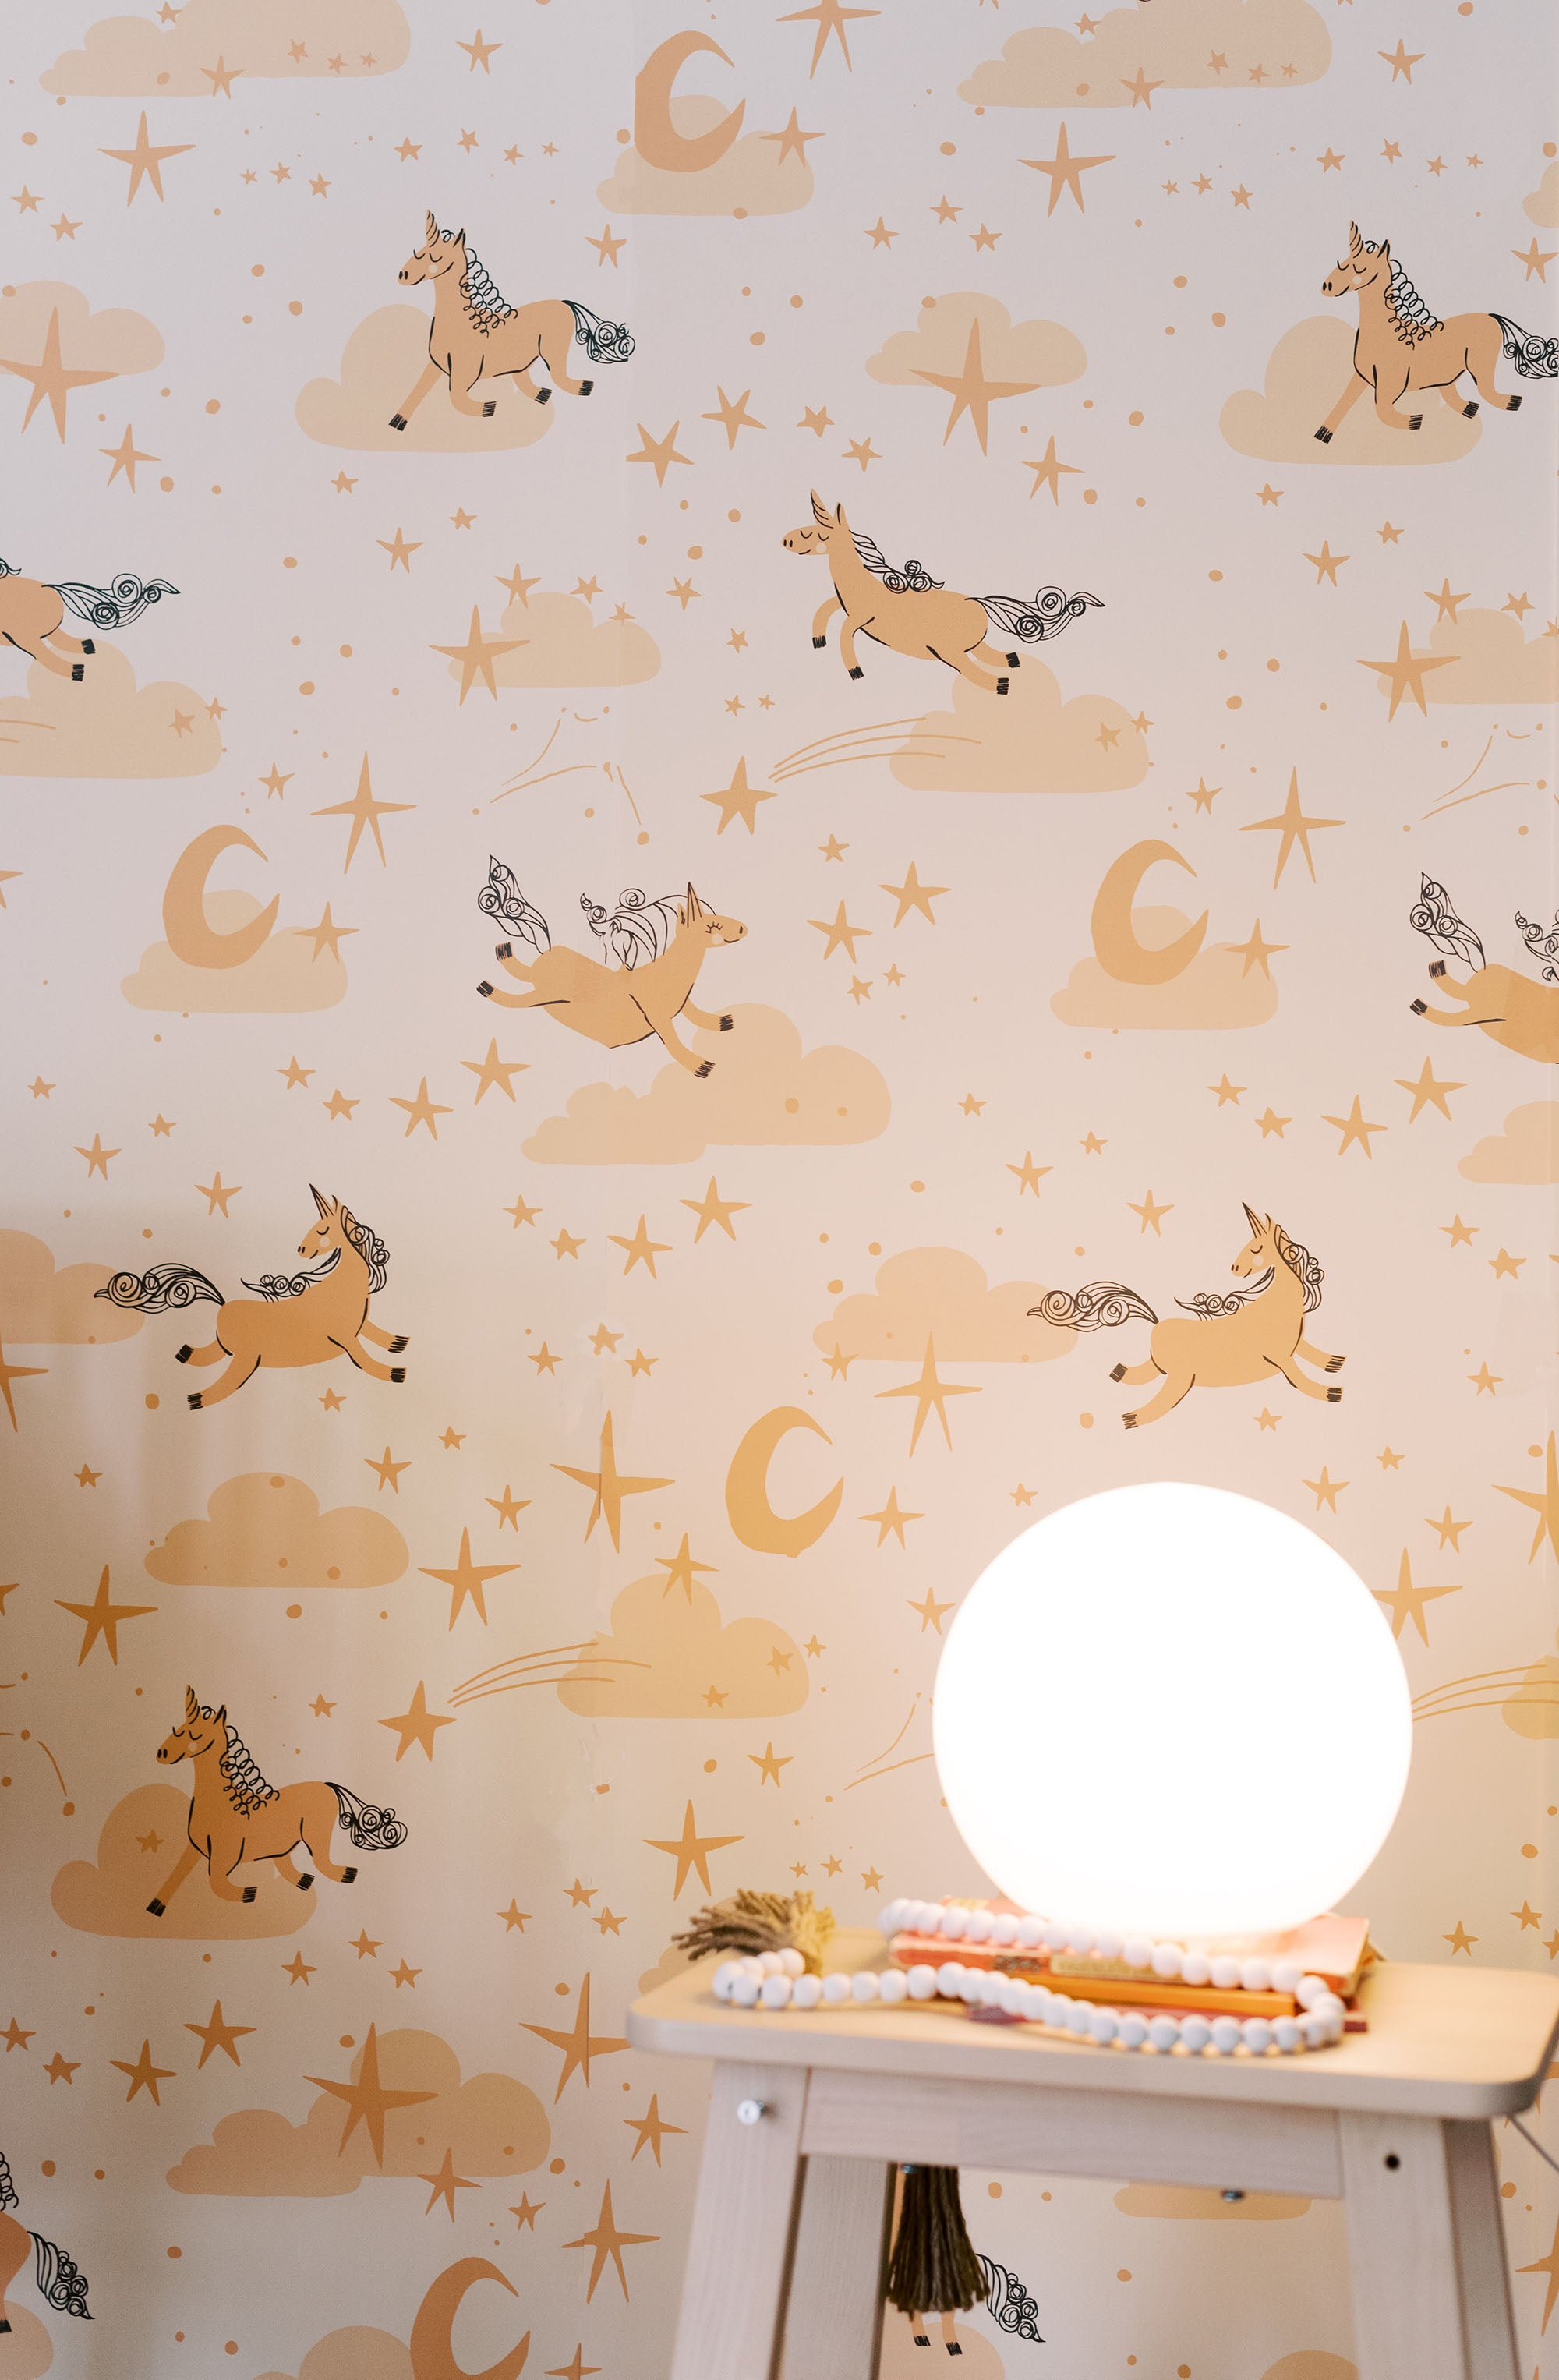 whimsical unicorn horse wallpaper